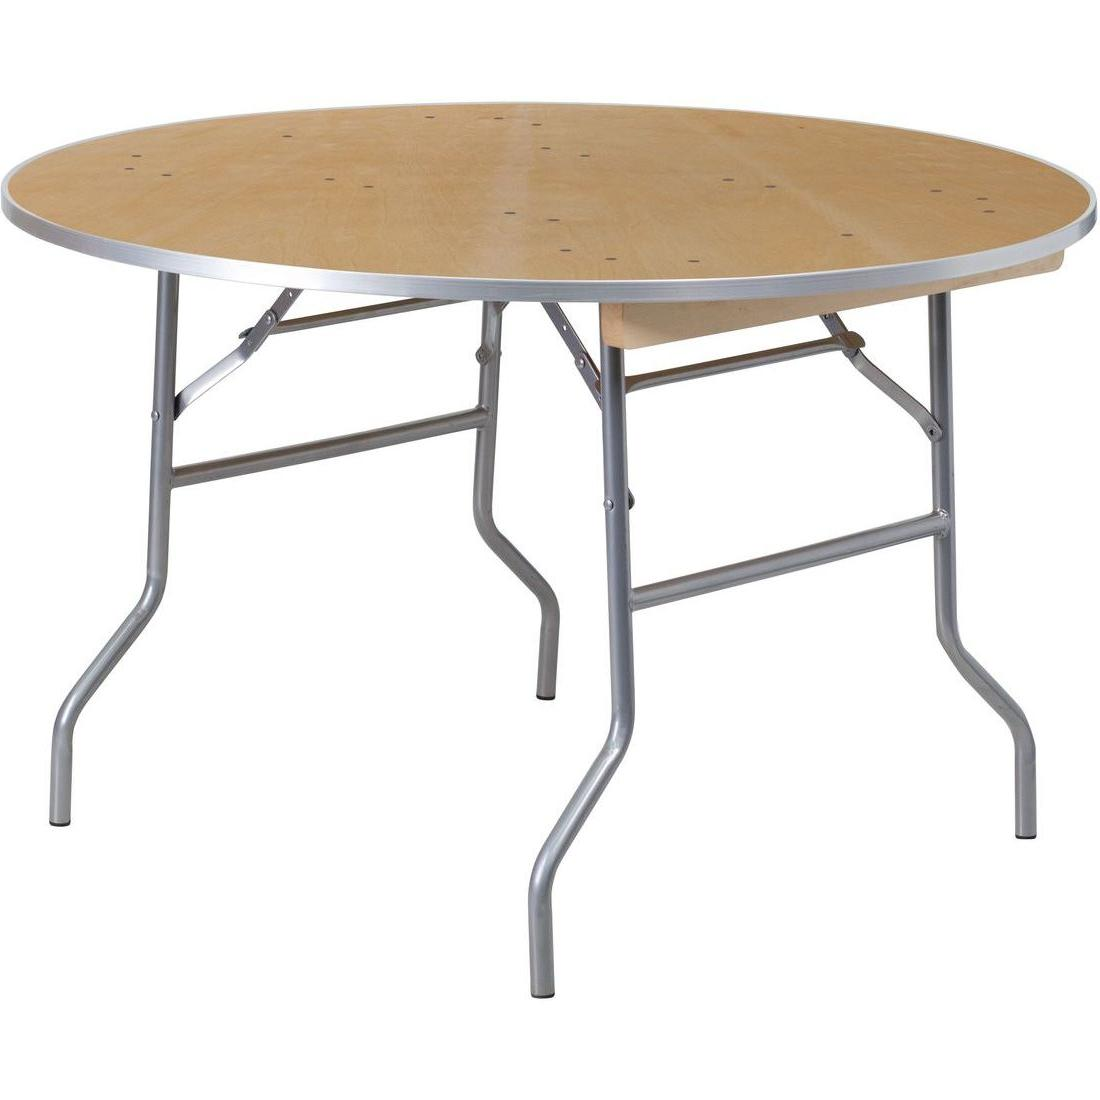 48'' Round Heavy Duty Birchwood Folding Banquet Table with